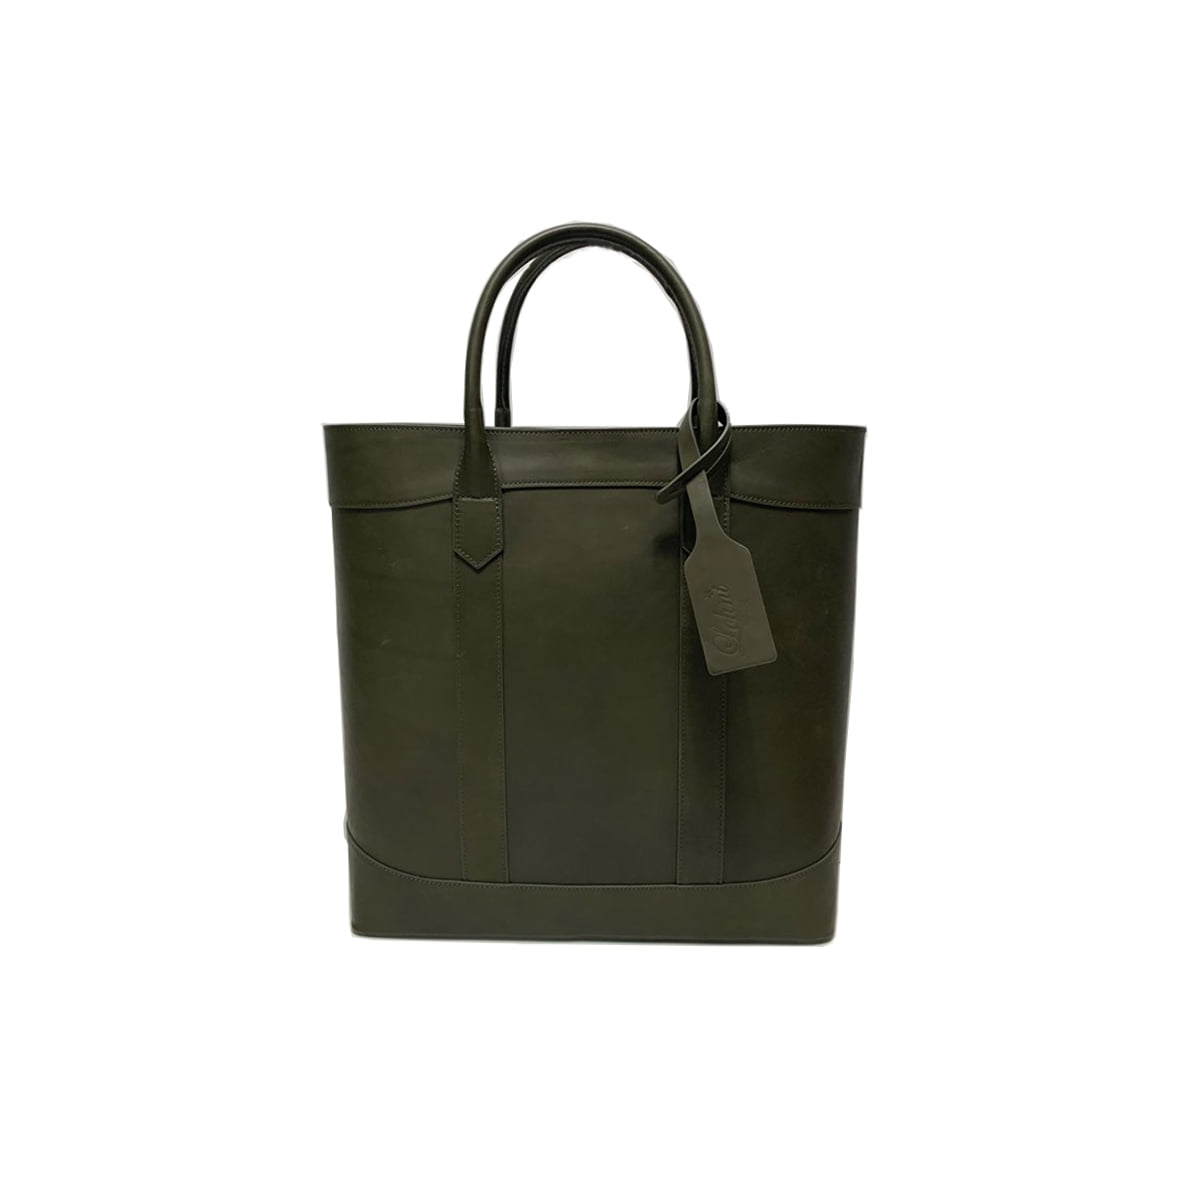 073 Khaki Vegetable TotebagLohnt(론트)